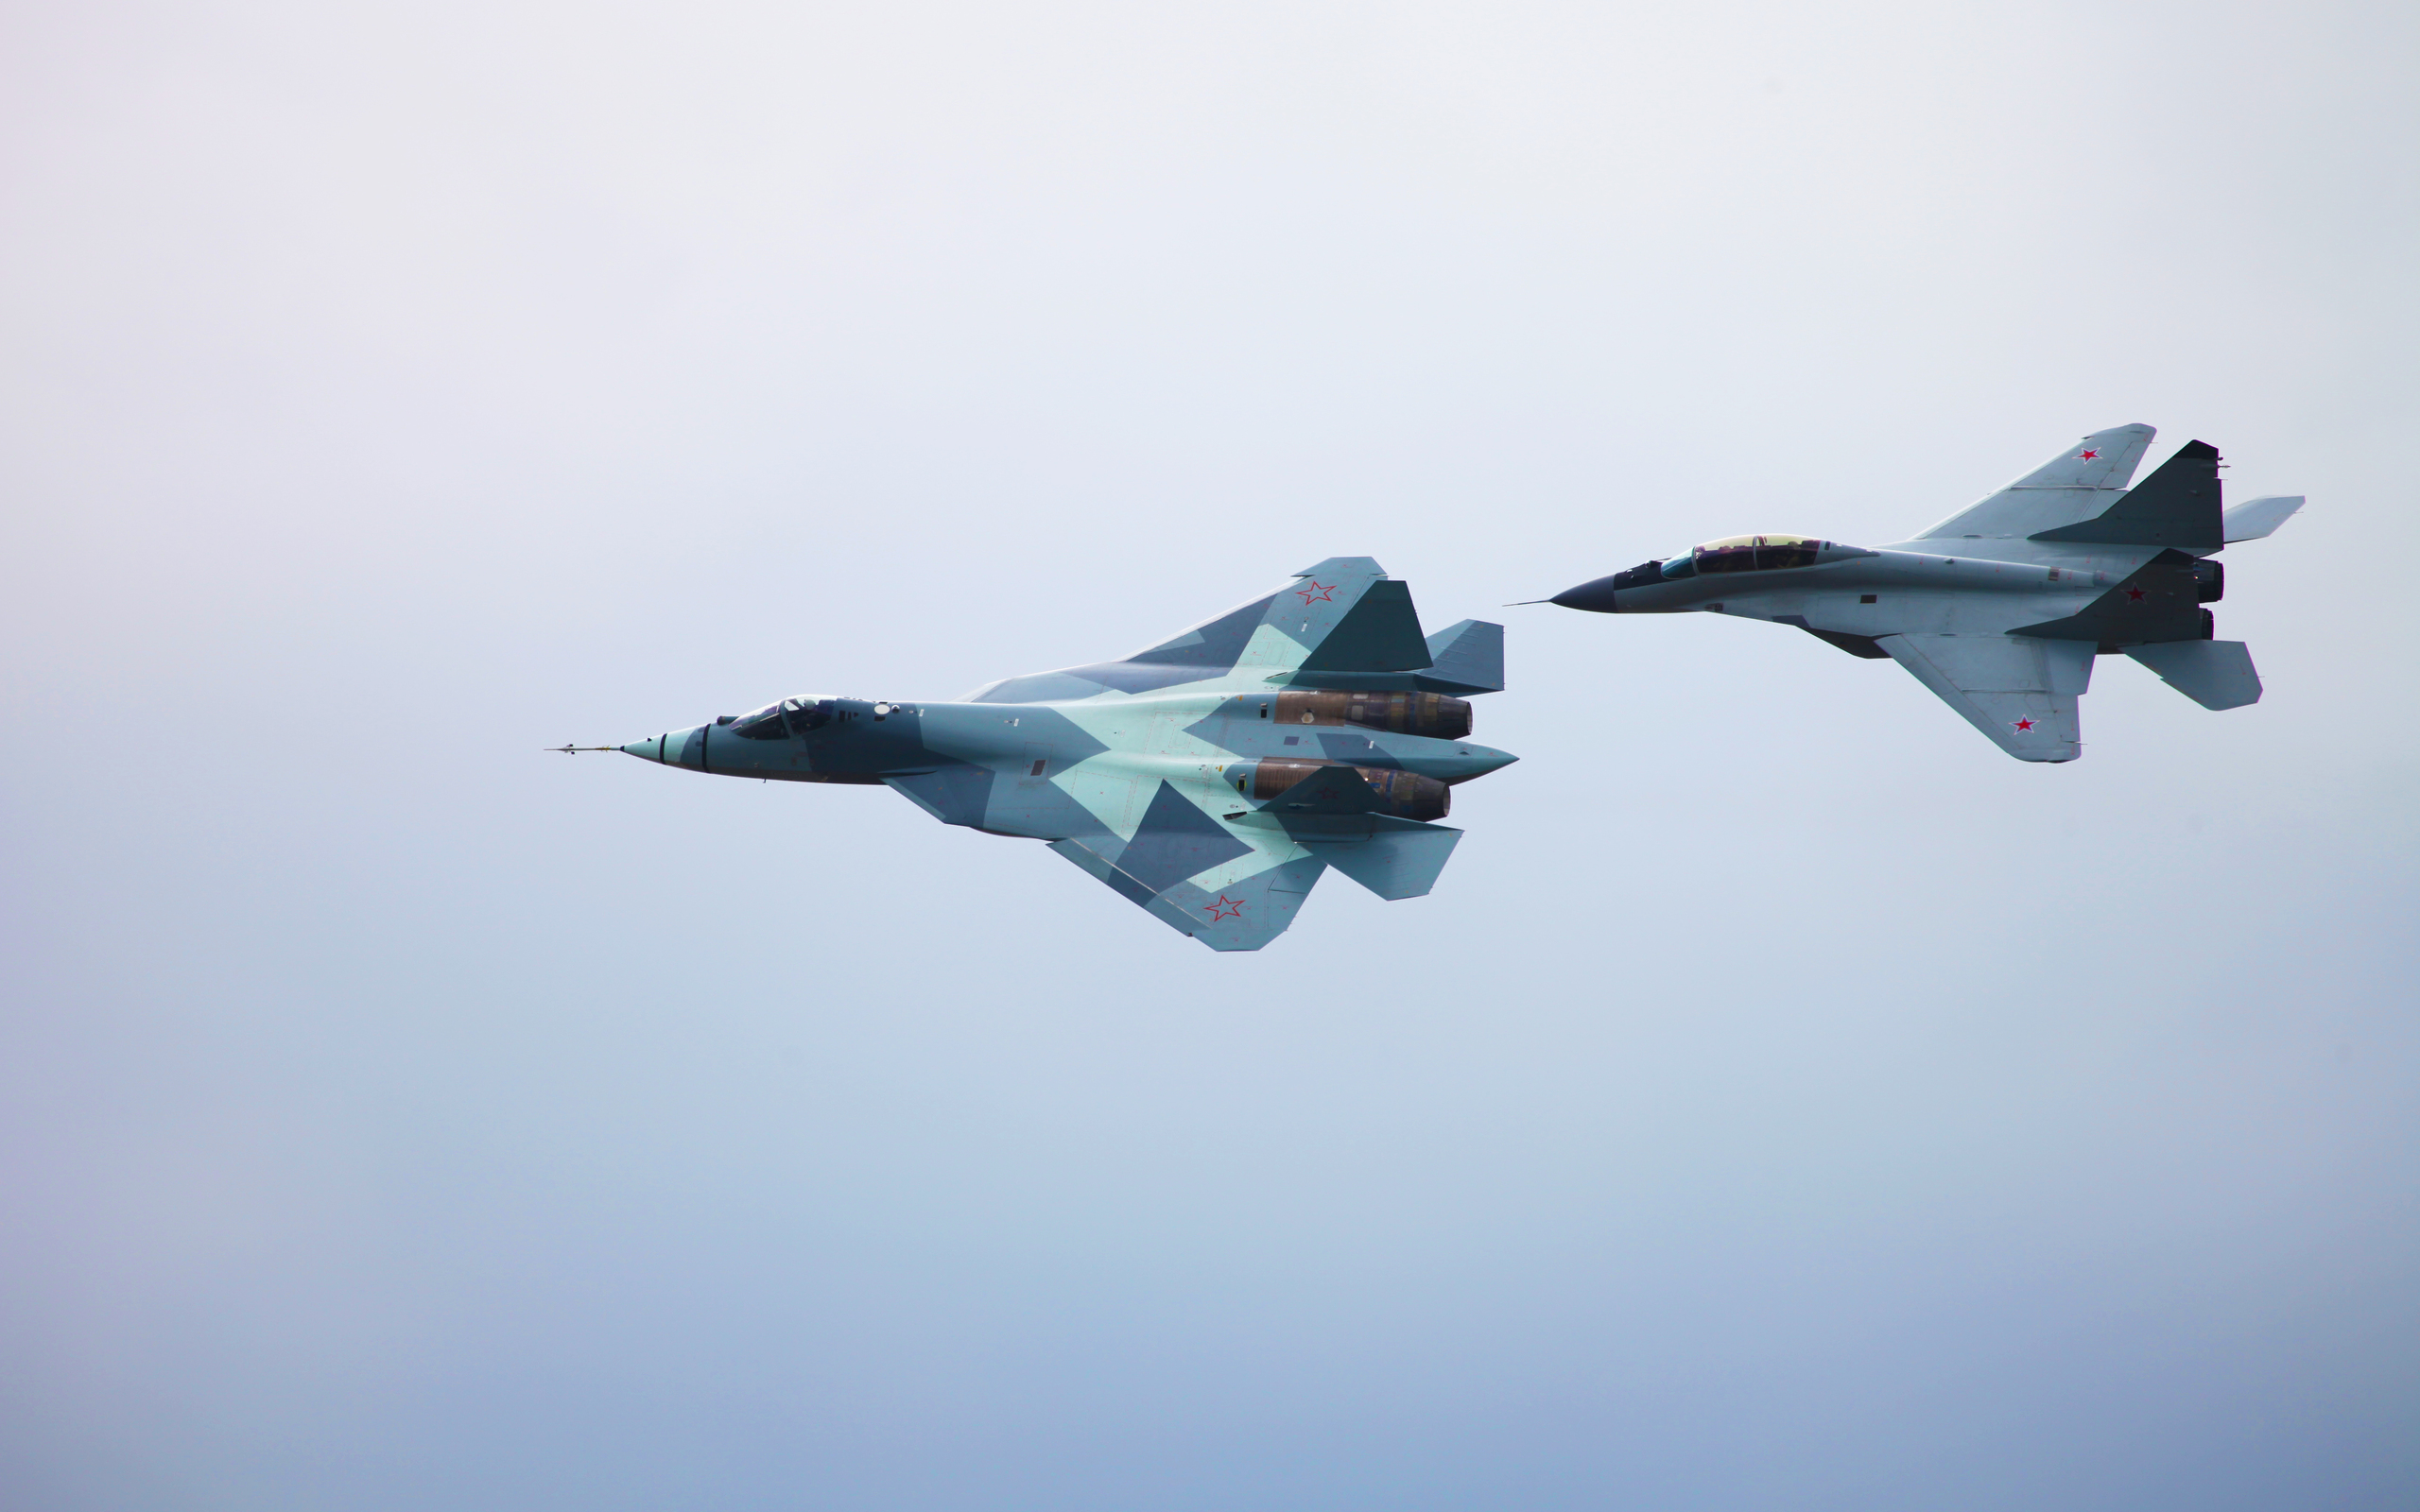 50 sukhoi t 50 pak fa wallpapers hd desktop and mobile backgrounds - Hd Wallpaper Background Id 291124